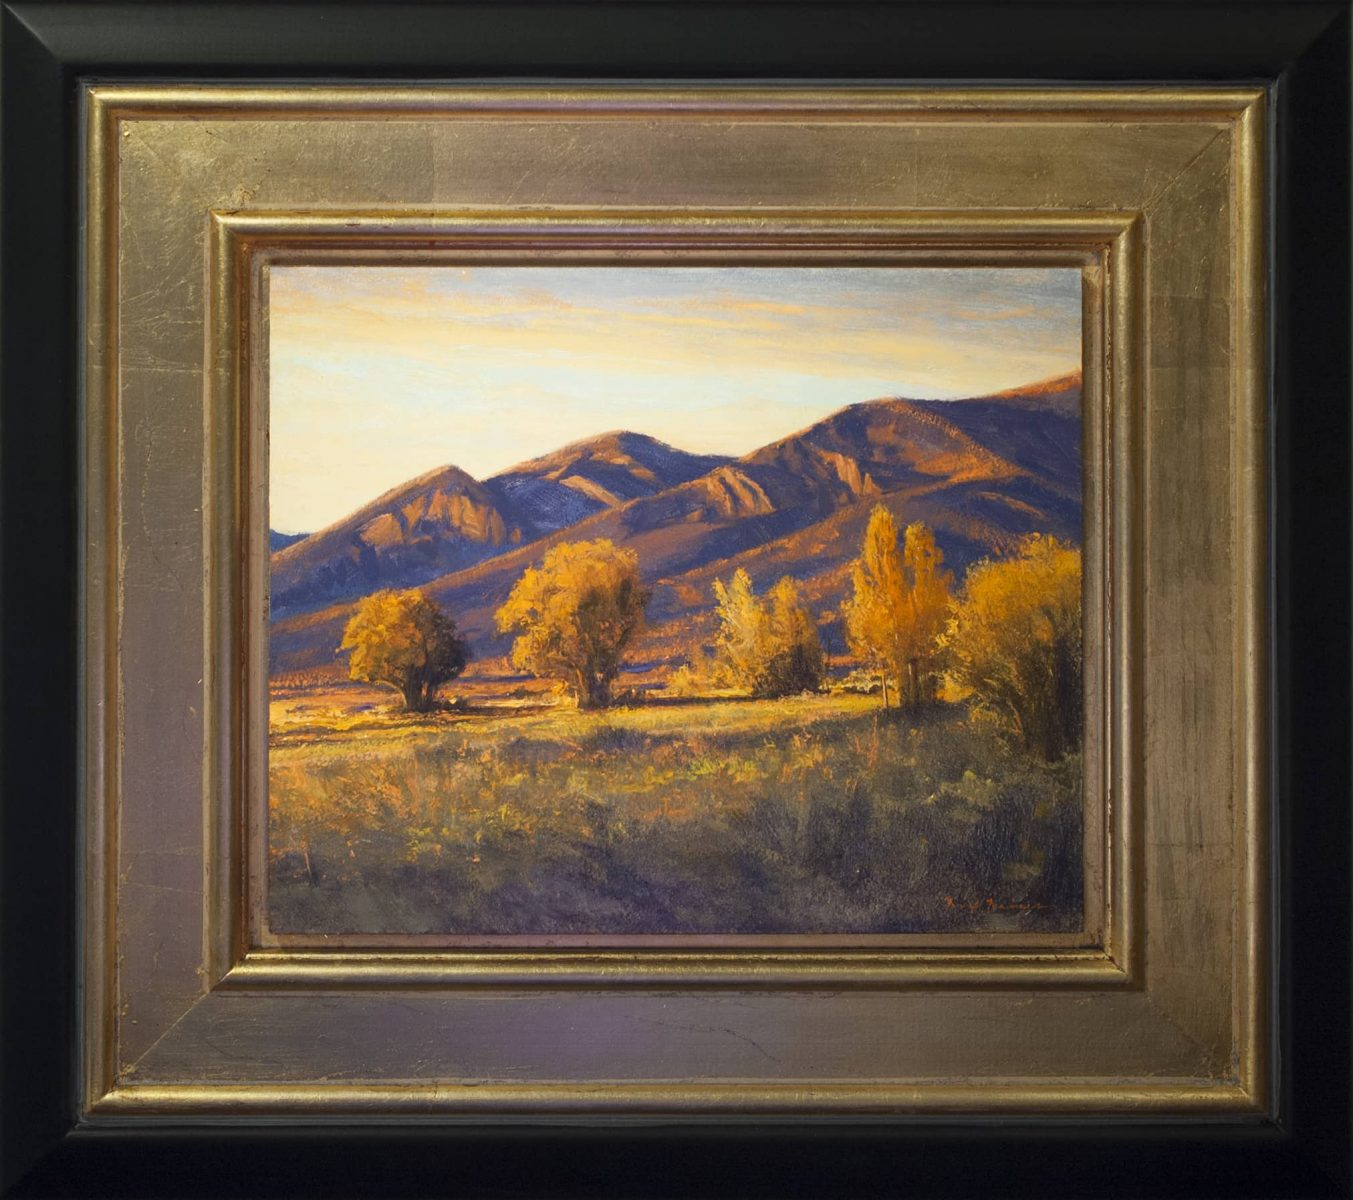 New Mexico landscape oil painting by Dix Baines